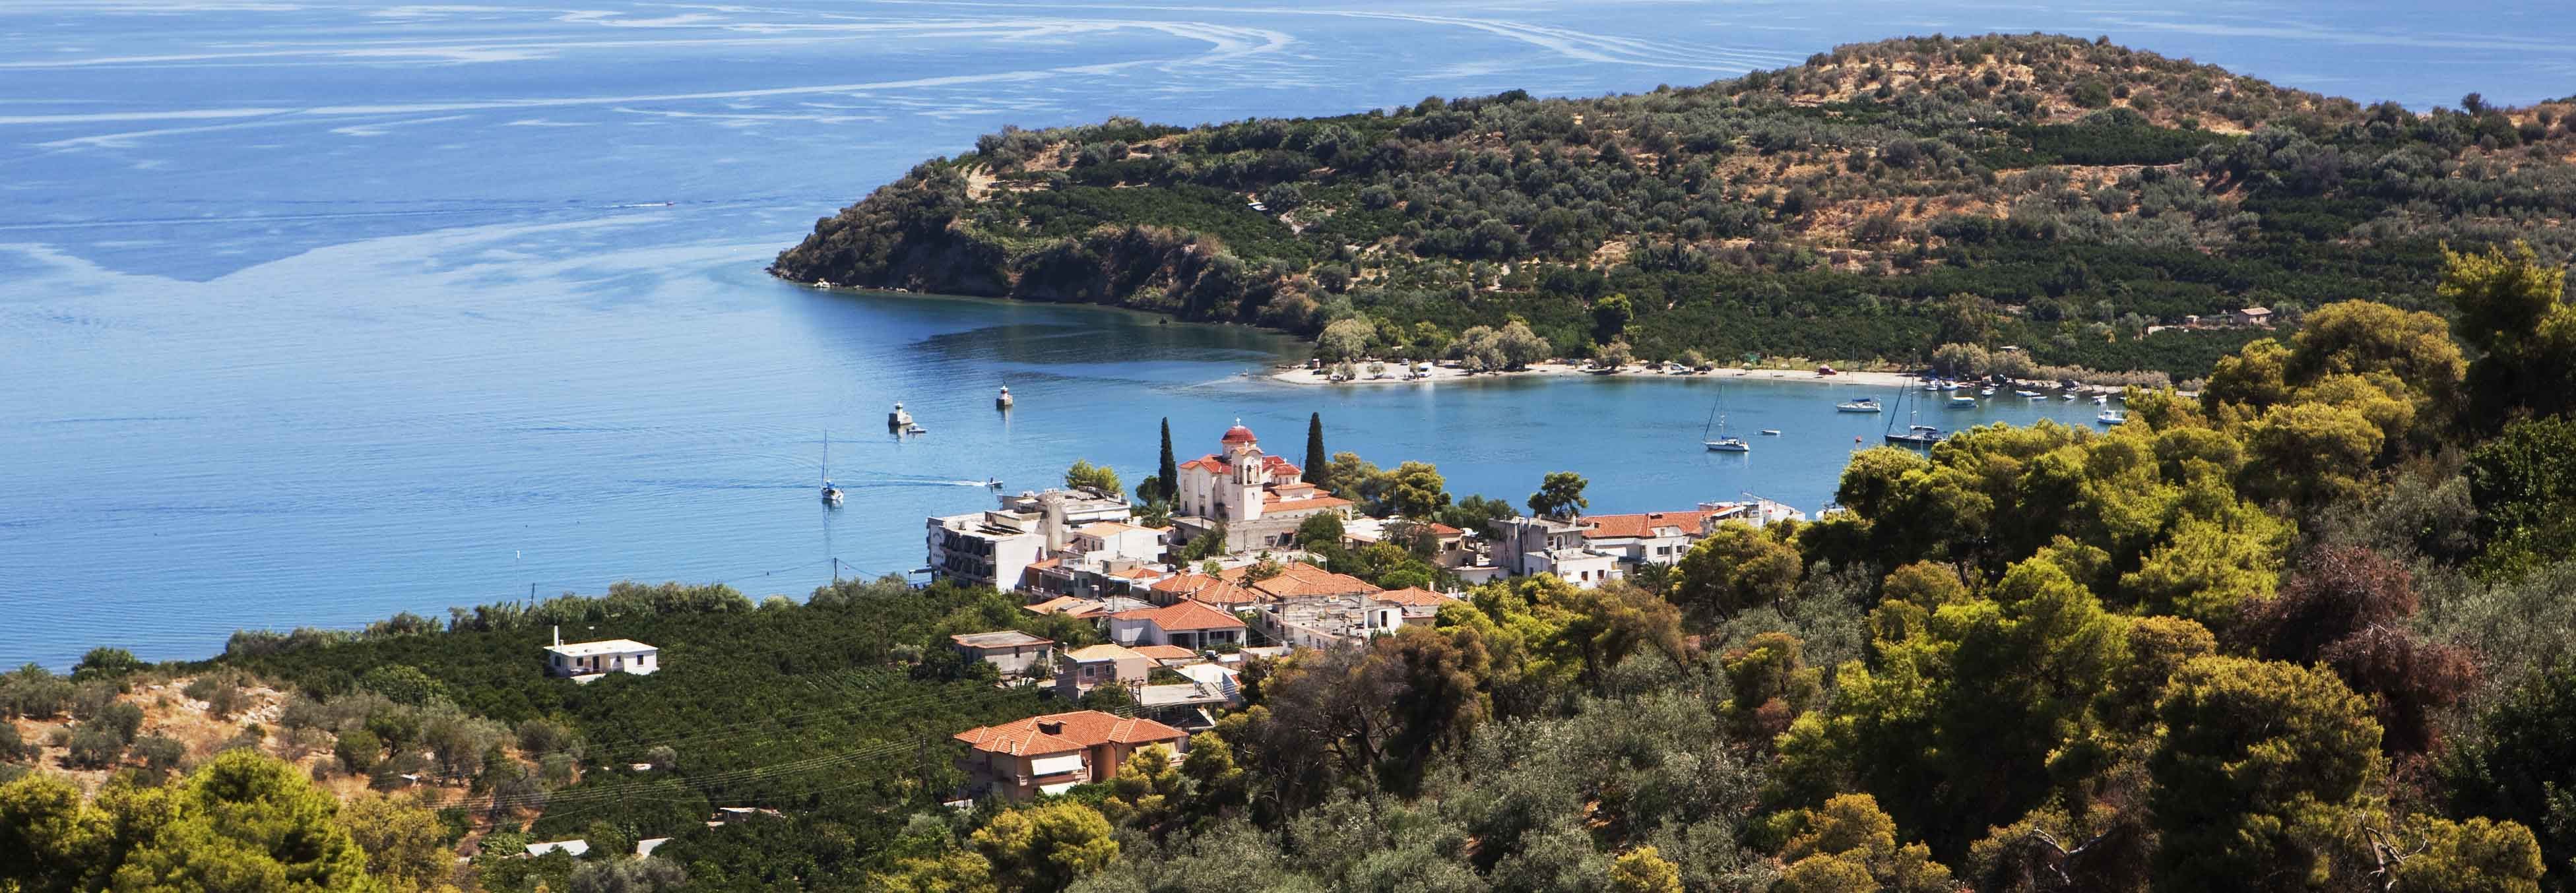 Luxury Travel to Southern Greece - Private Touring - Ker & Downey